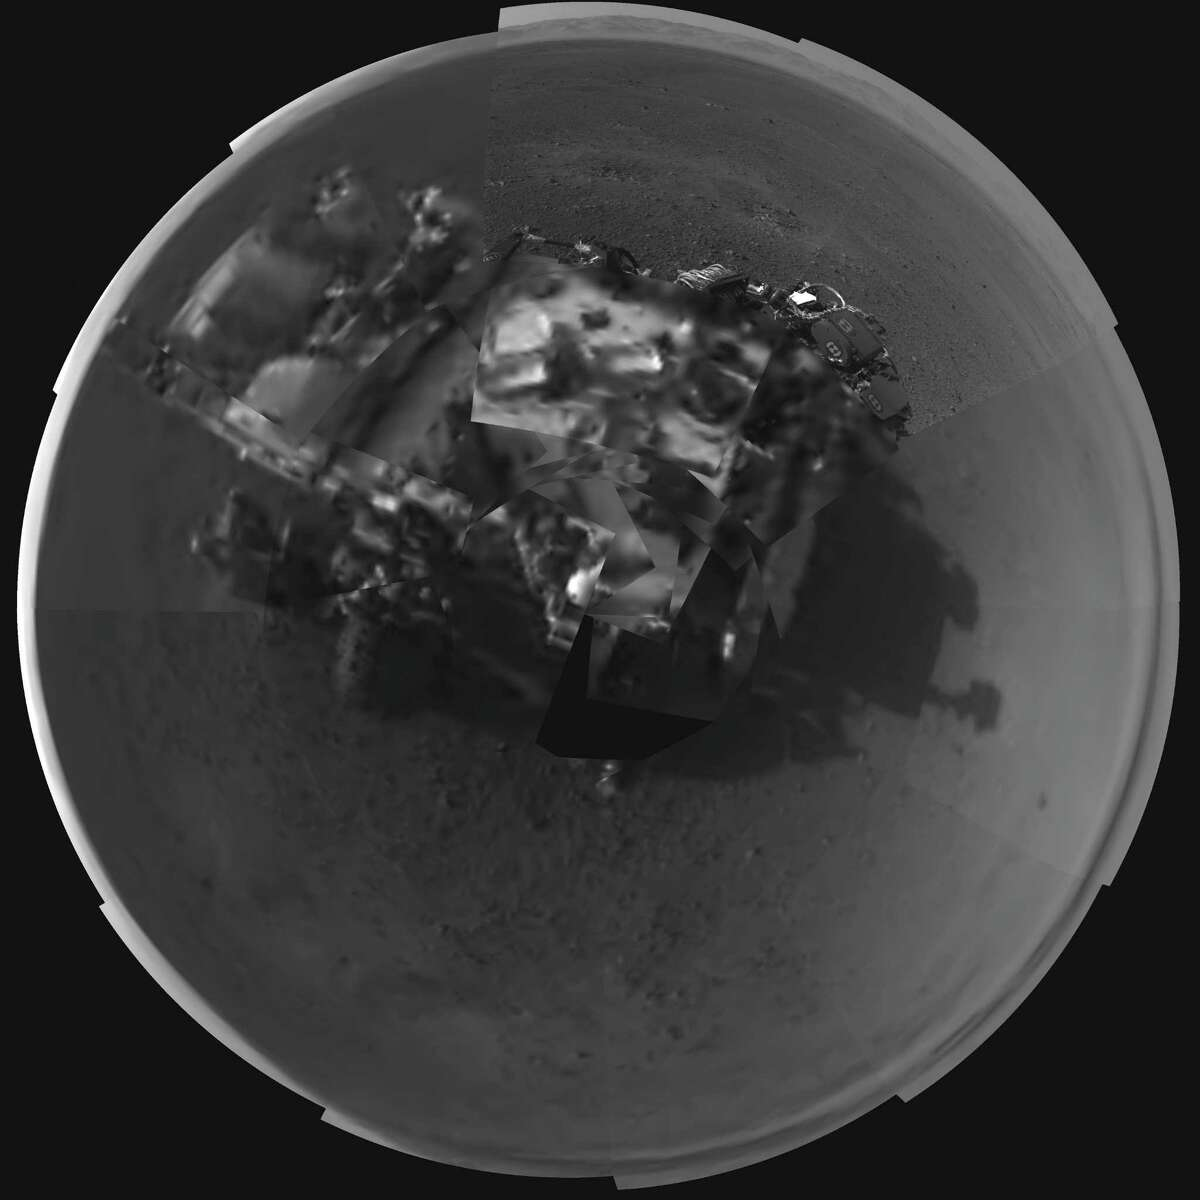 But, really, the Curiosity rover is the big vehicle in the news. Here's a composite self portrait of the vehicle that NASA released on Aug. 8, 2012.